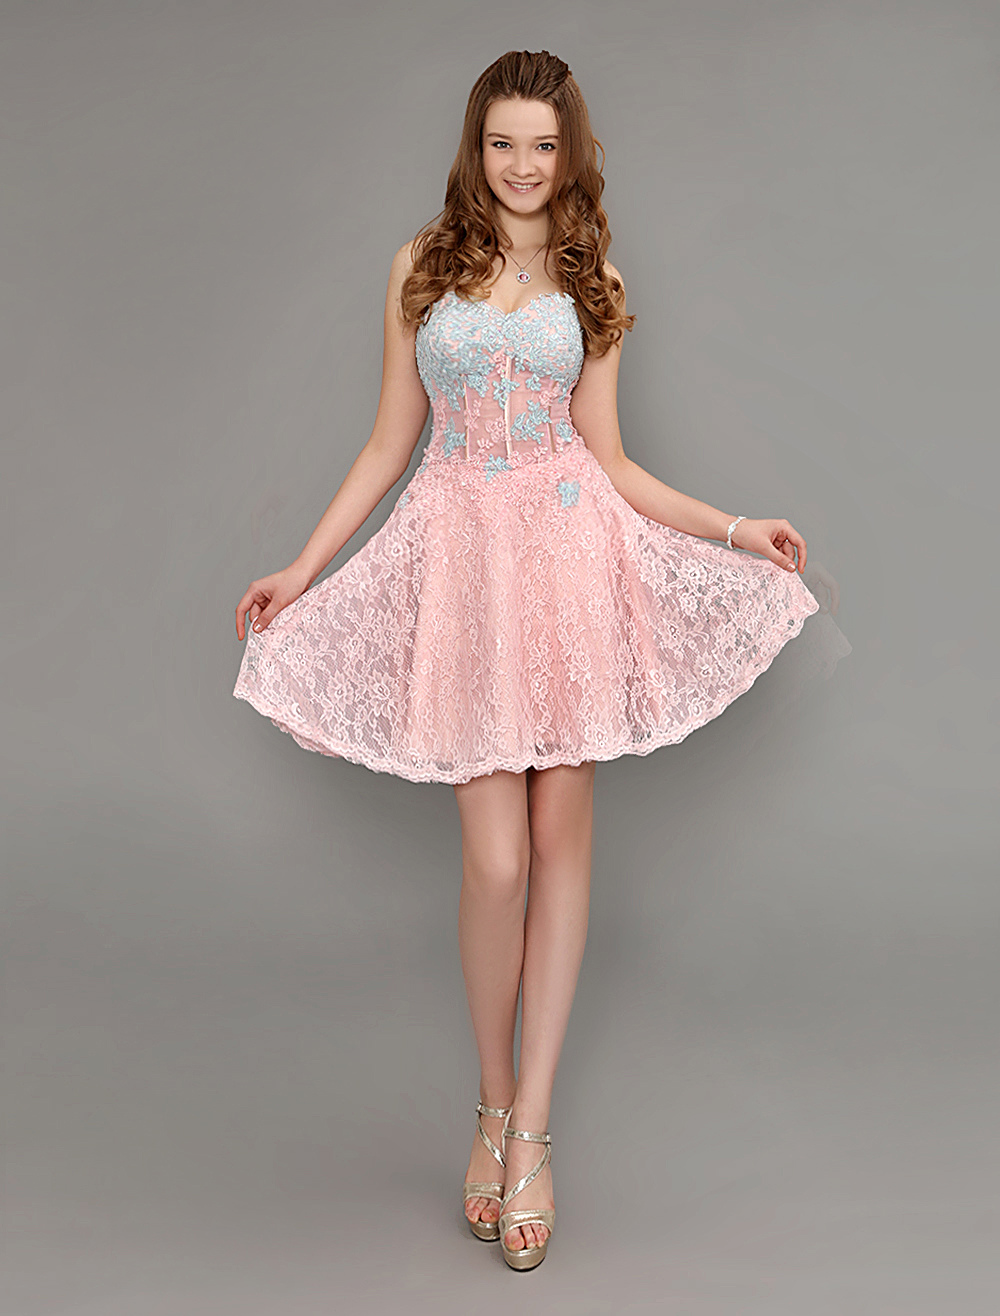 Lace Cocktail Dress Peach Sweetheart Short Homecoming Dress With Sheer Waist (Wedding Cocktail Dresses) photo